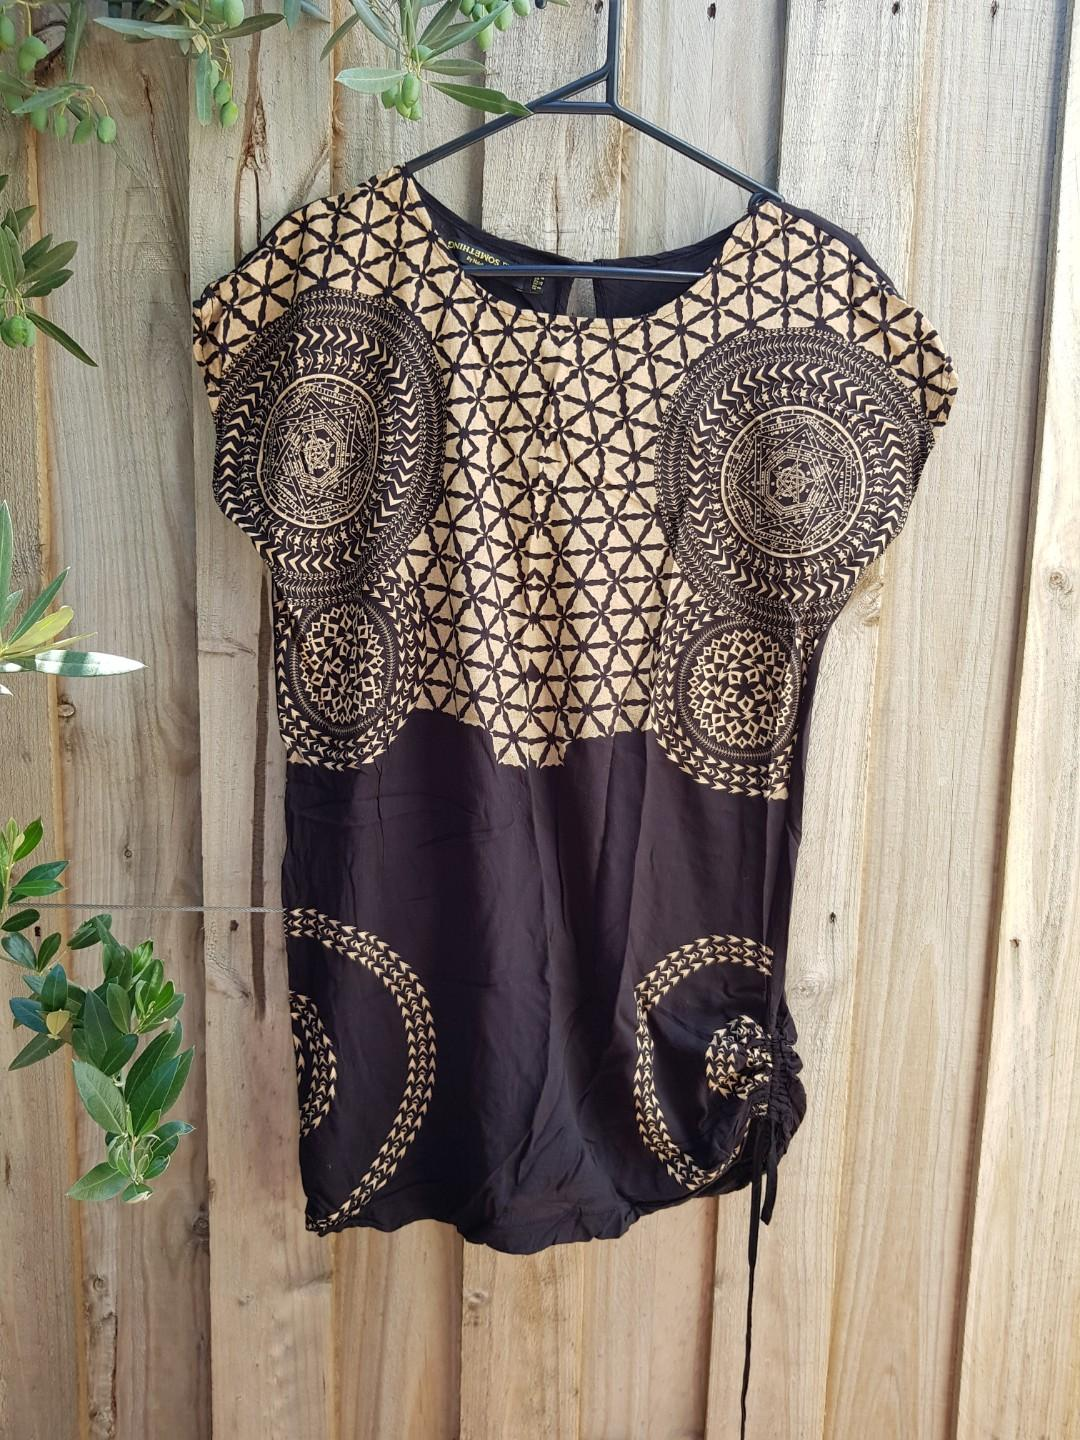 Something Else long black and gold top. Gathered at one side.